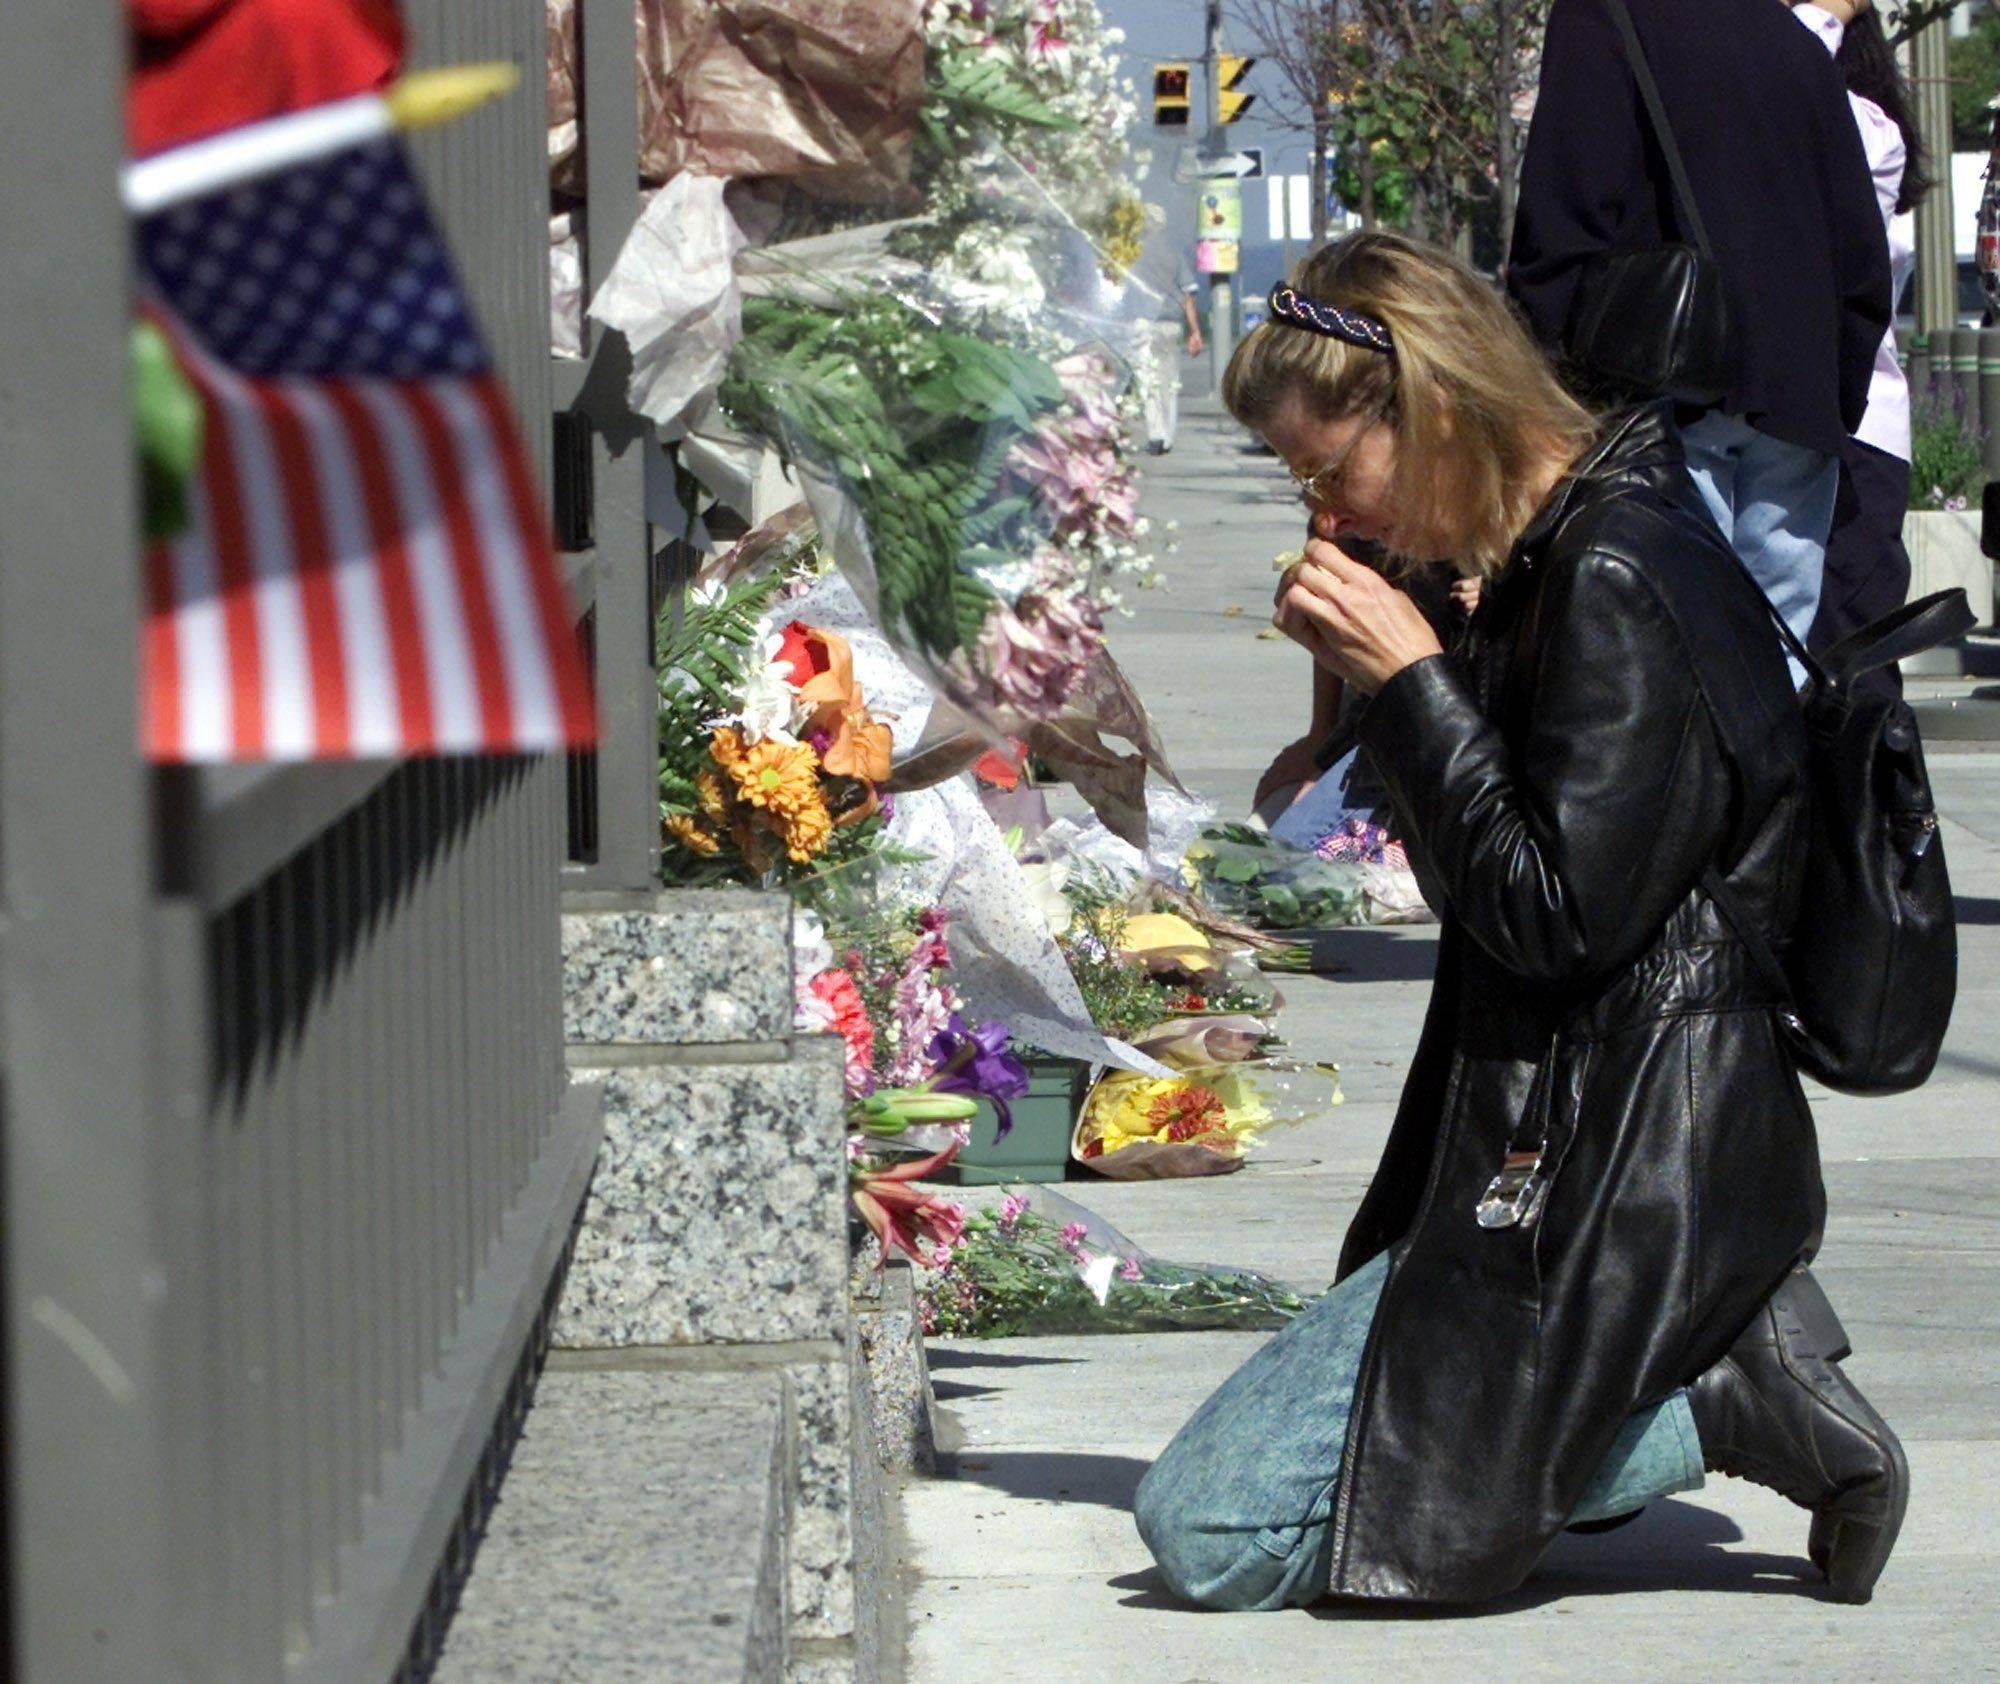 A woman breaks down in tears after leaving a bouquet of flowers outside the U.S. Embassy in Ottawa, Canada, on Sept. 12, 2001.